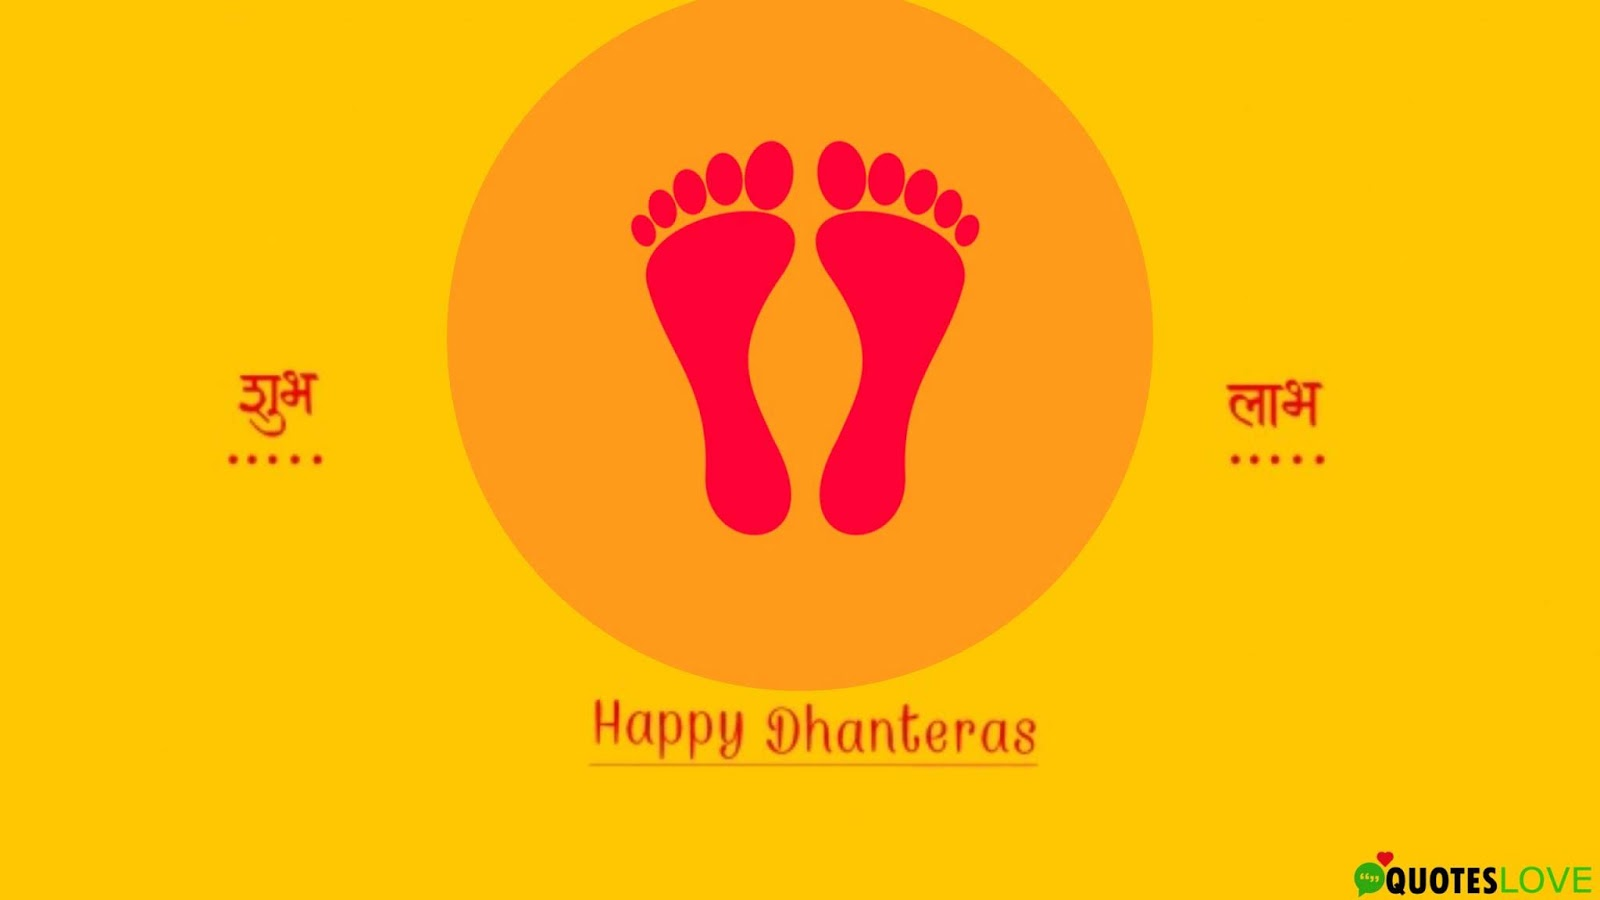 (Latest) Happy Dhanteras Wishes Images 2019